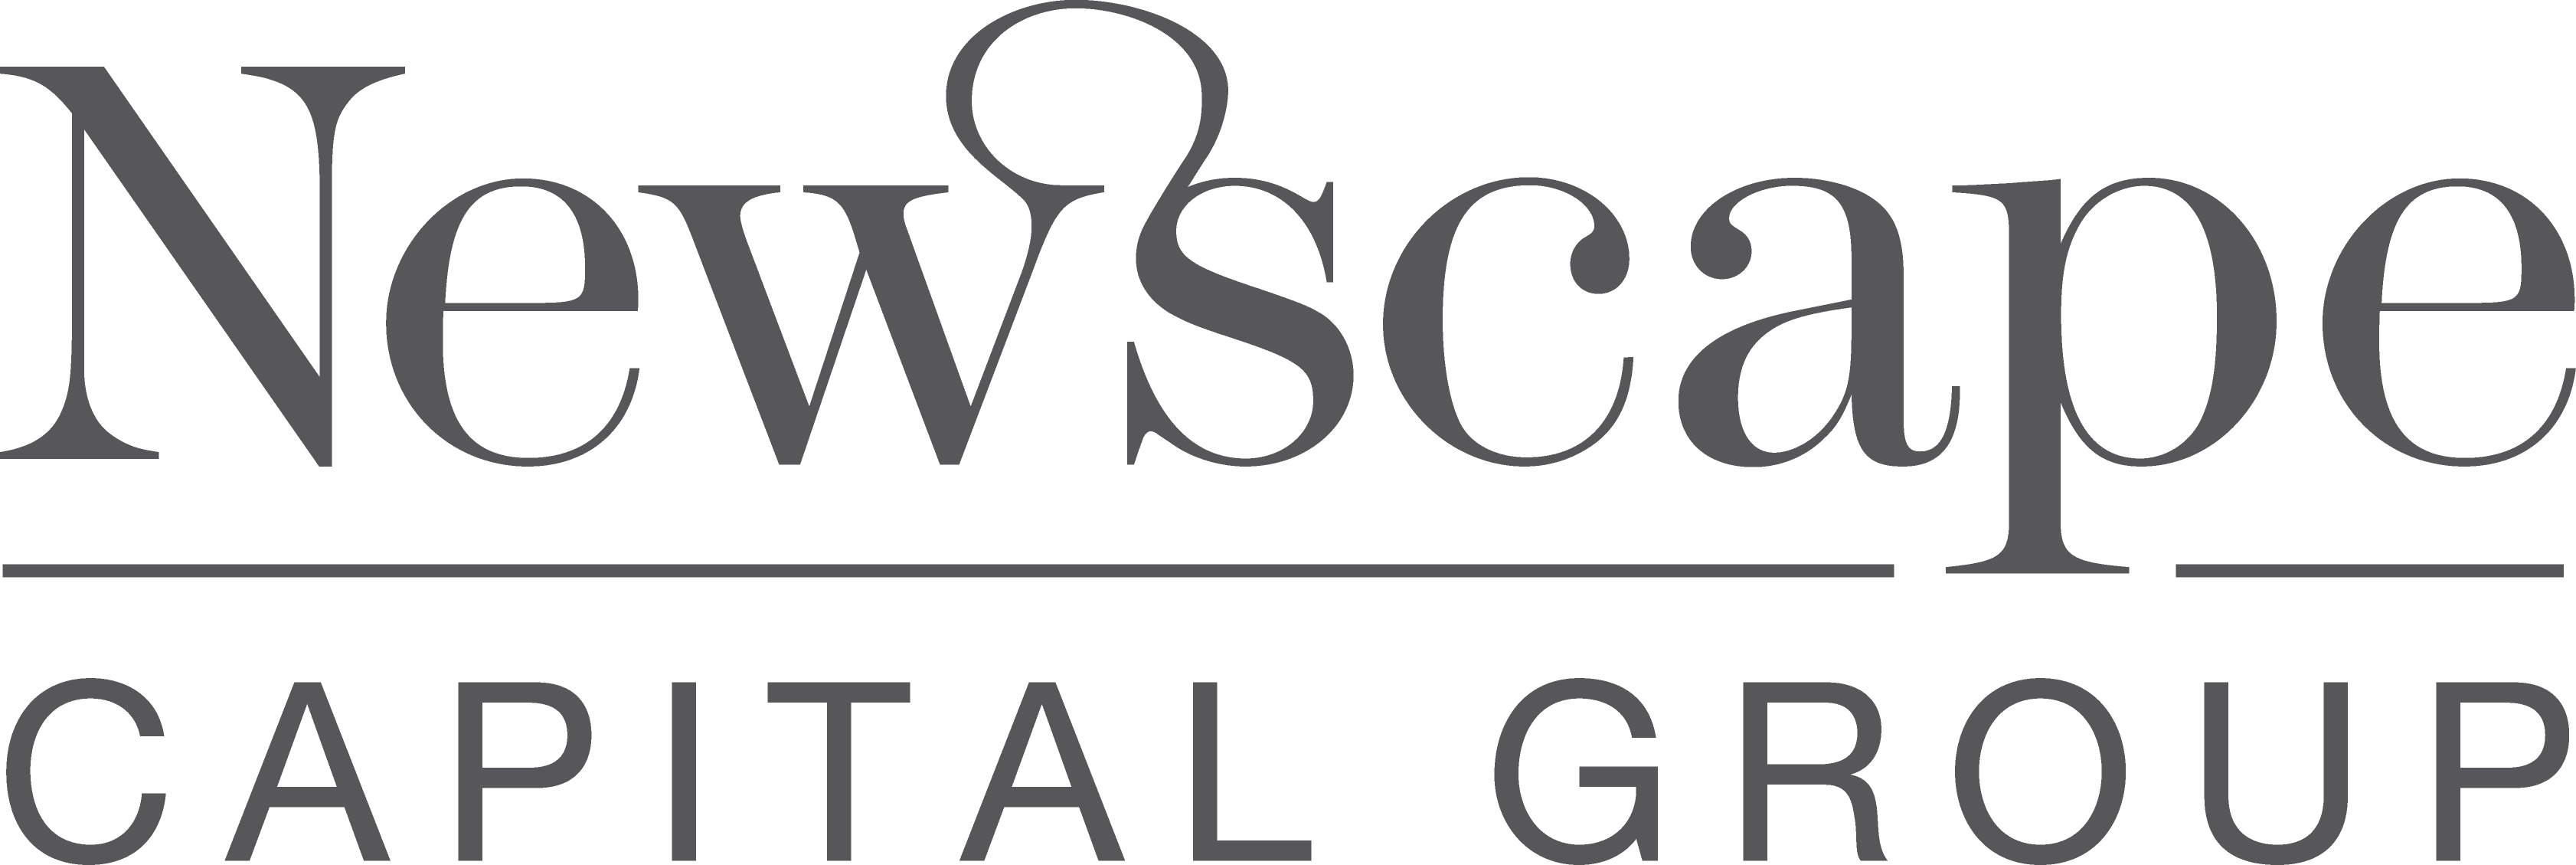 Newscape Capital Group